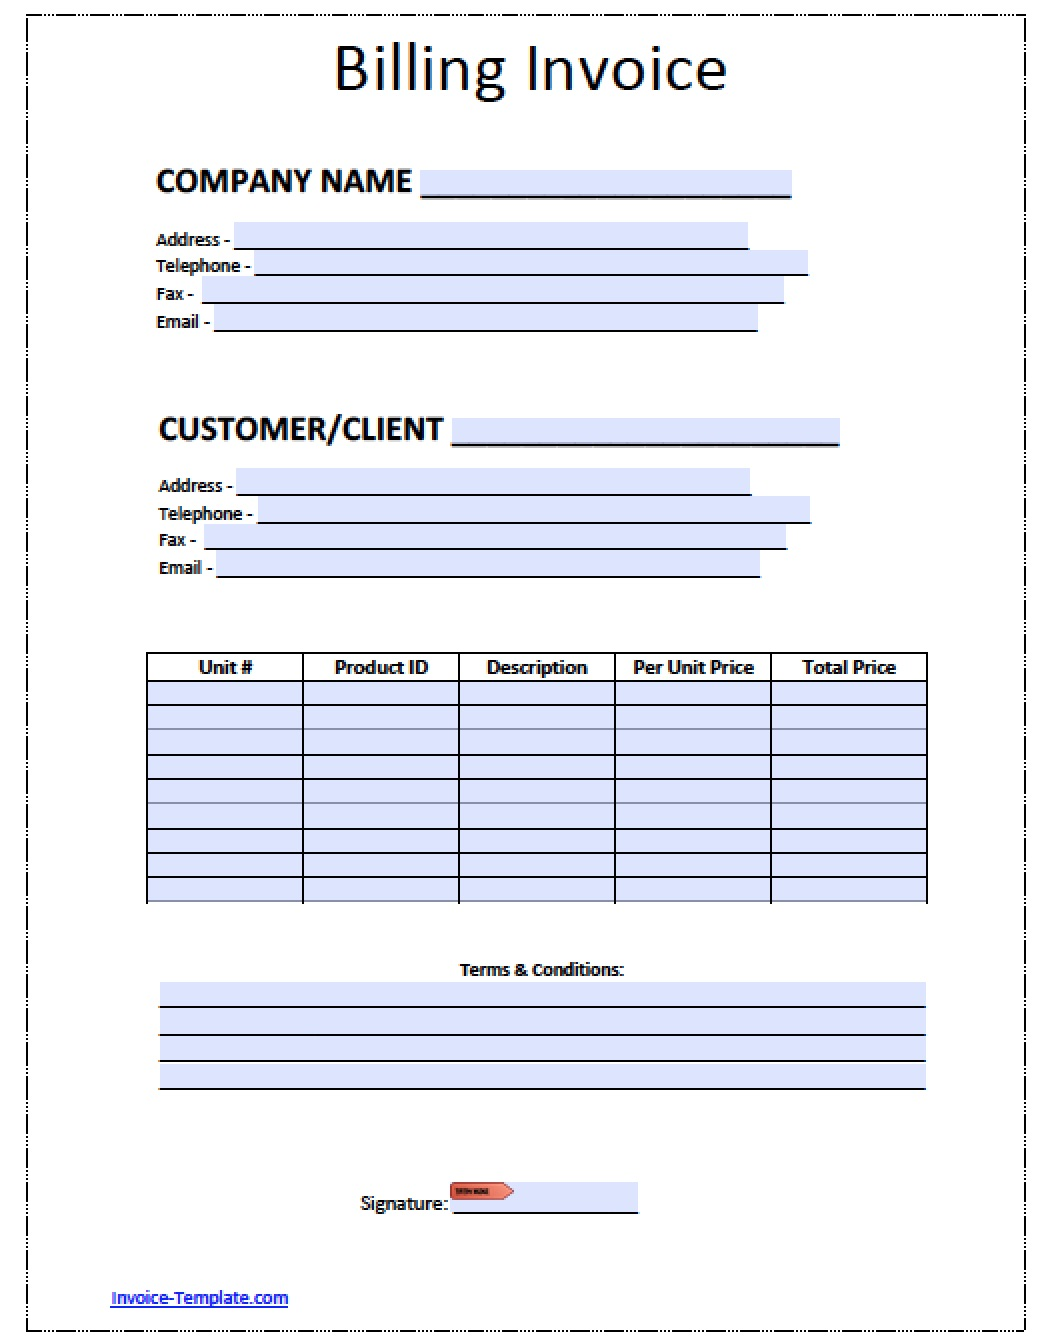 Free Billing Invoice Template Excel PDF Word Doc - Free billing invoice forms for service business